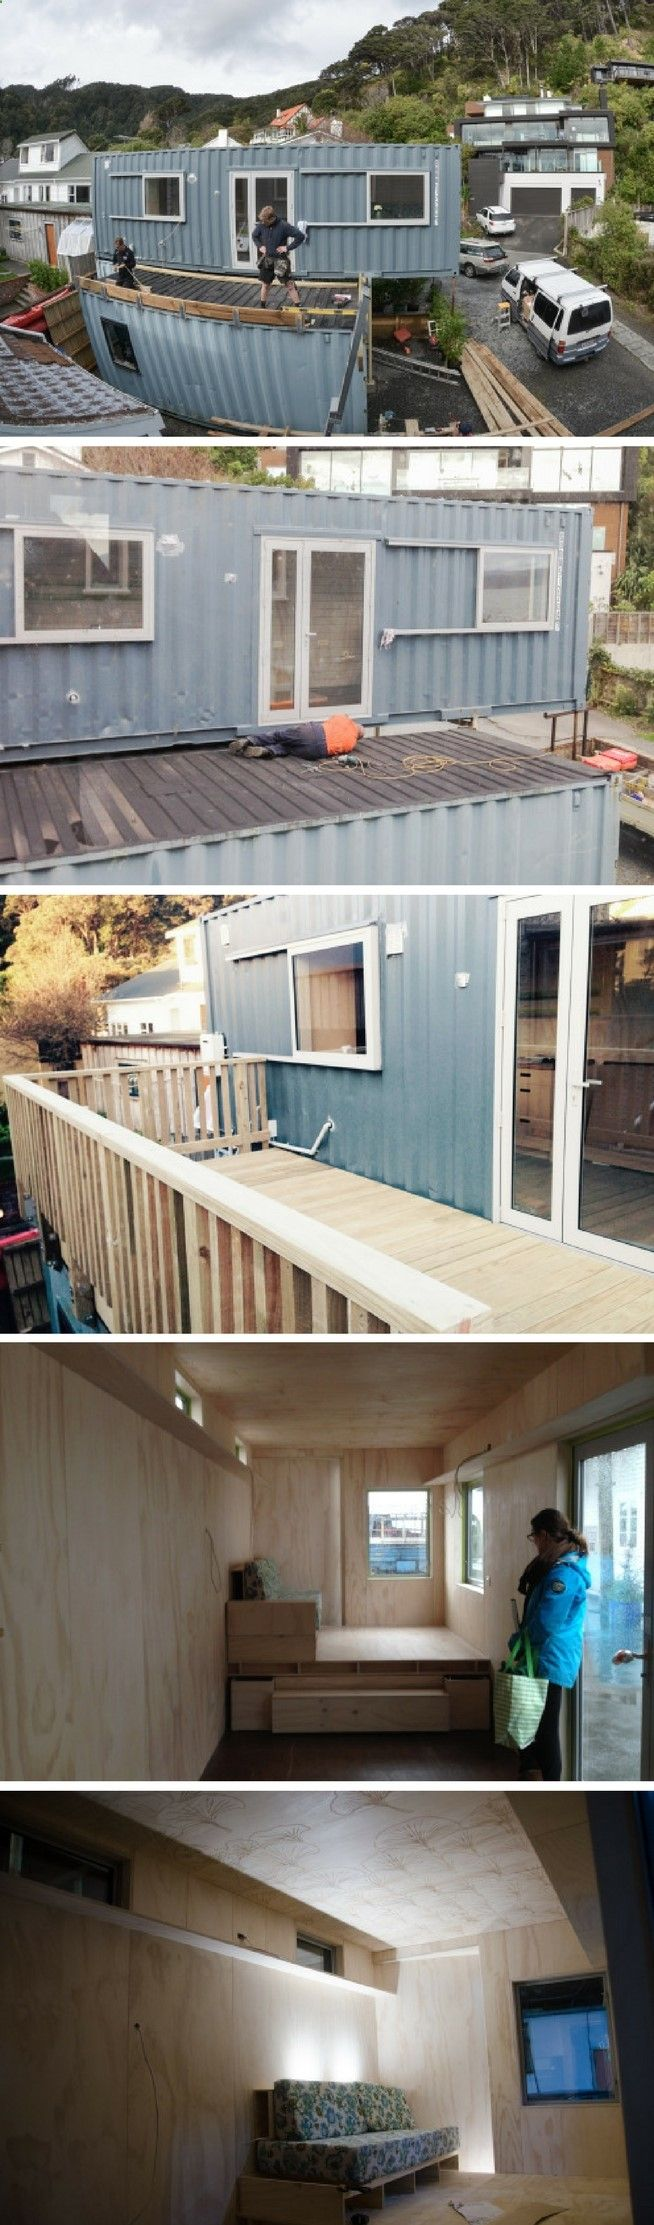 CAN HOUSE L SHIPPING CONTAINER HOME